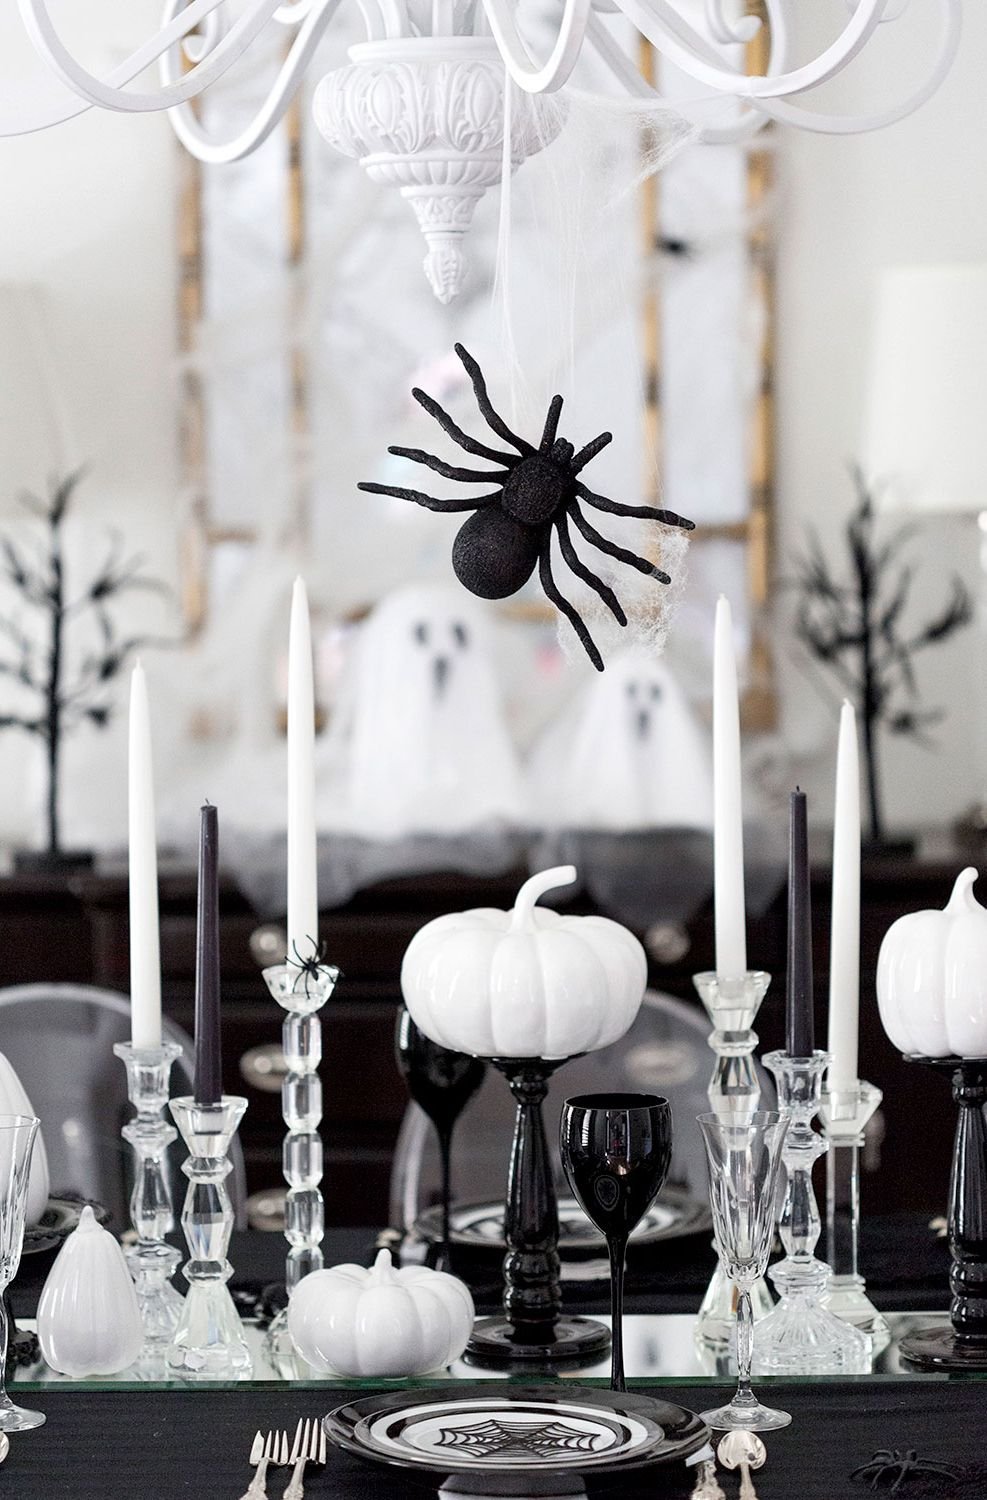 30 Halloween Centerpieces \u0026 Table Decorations , DIY Ideas